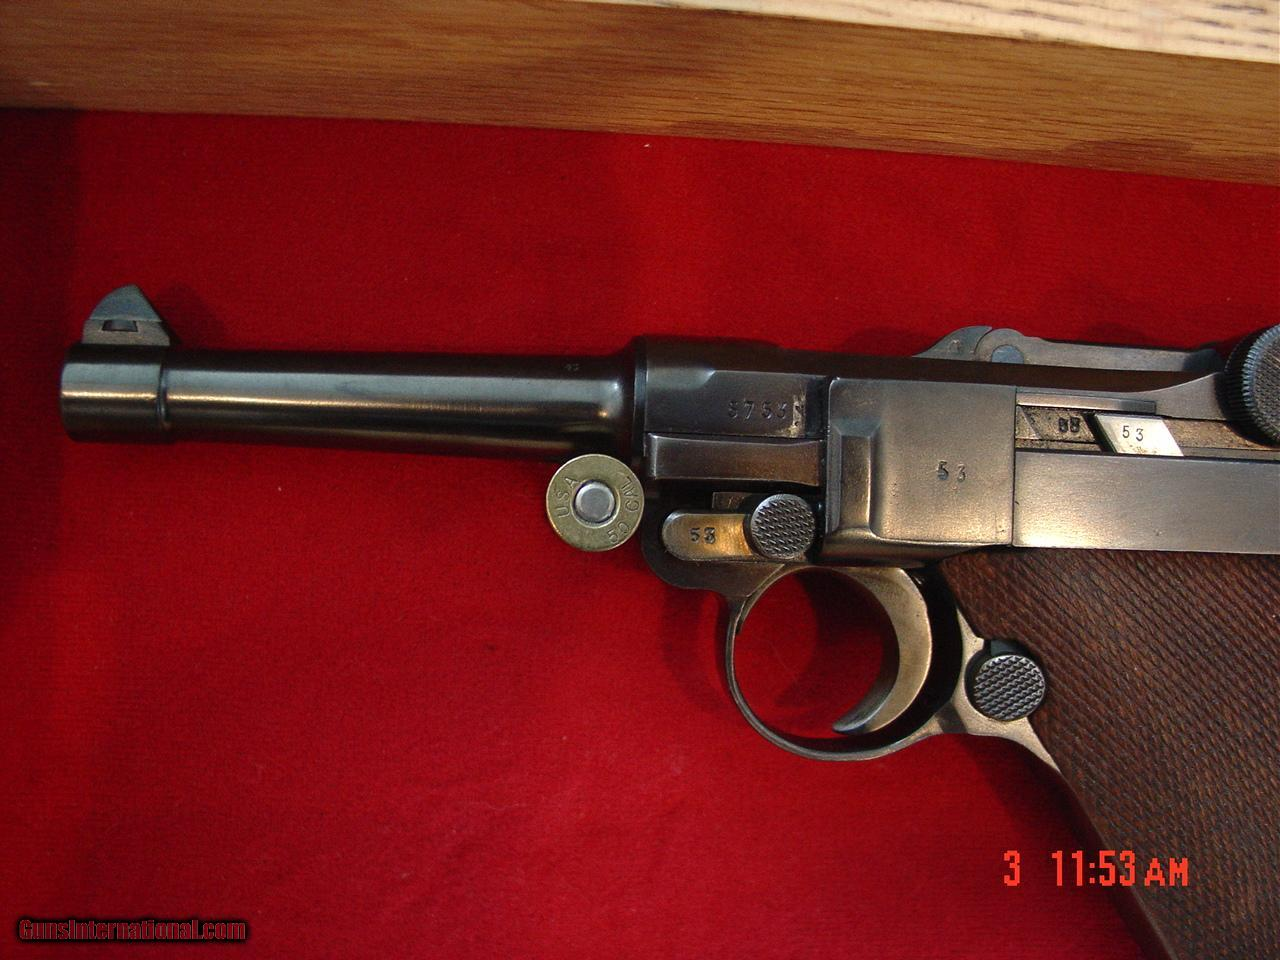 Luger Mannlicher 9mm,matching #s except magazine,possible